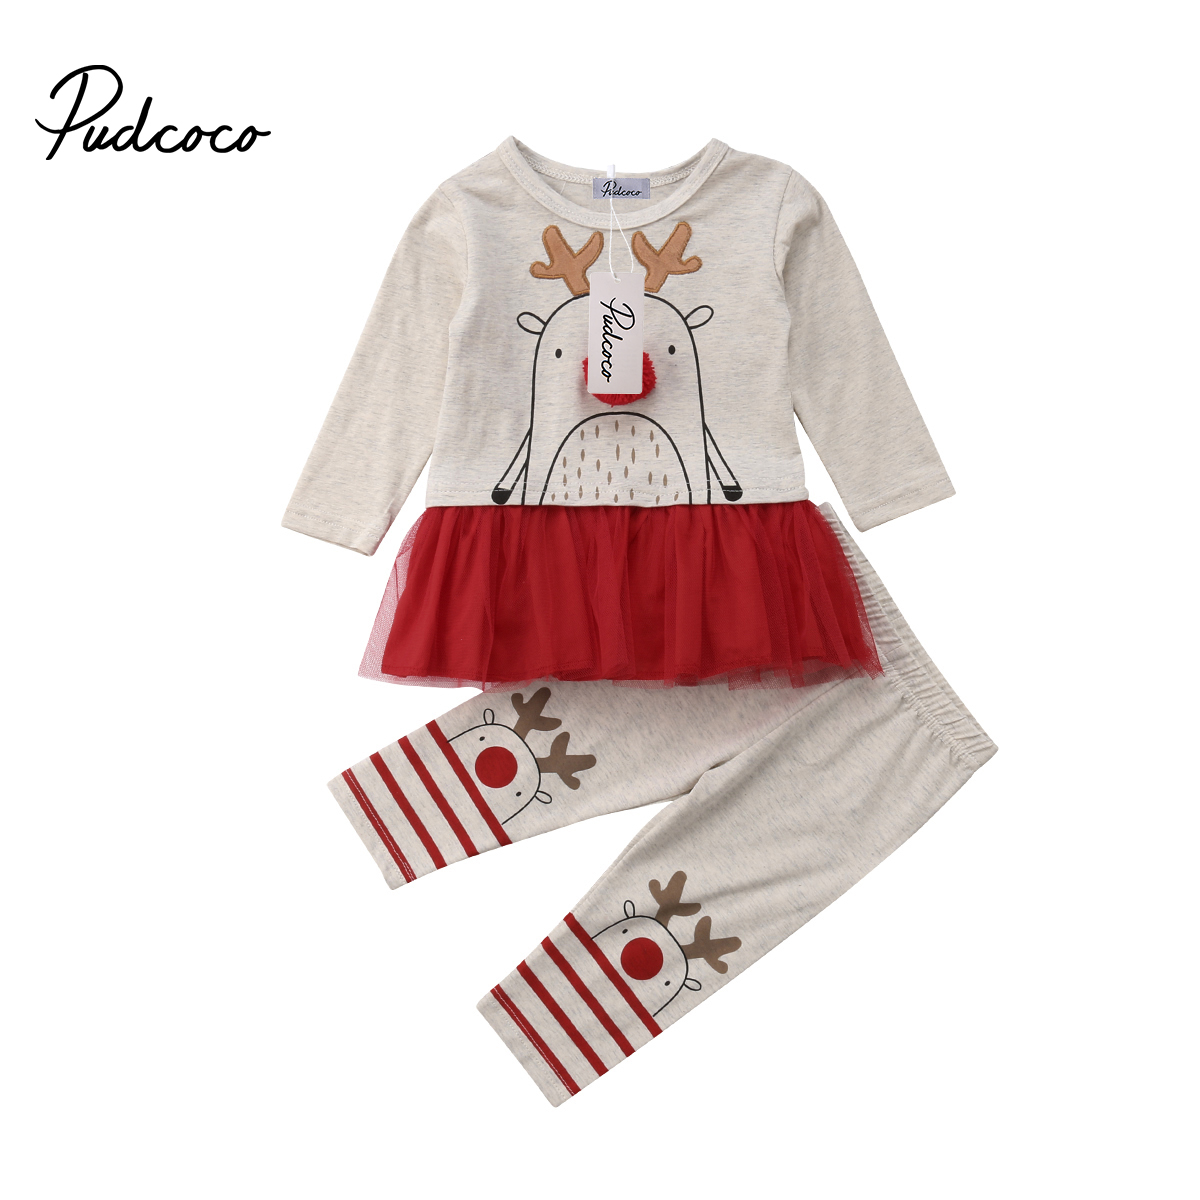 Kids Toddler Baby Girls Festival Outfits Long Sleeve T-Shirt Top Tunic Long Pants Clothes Set